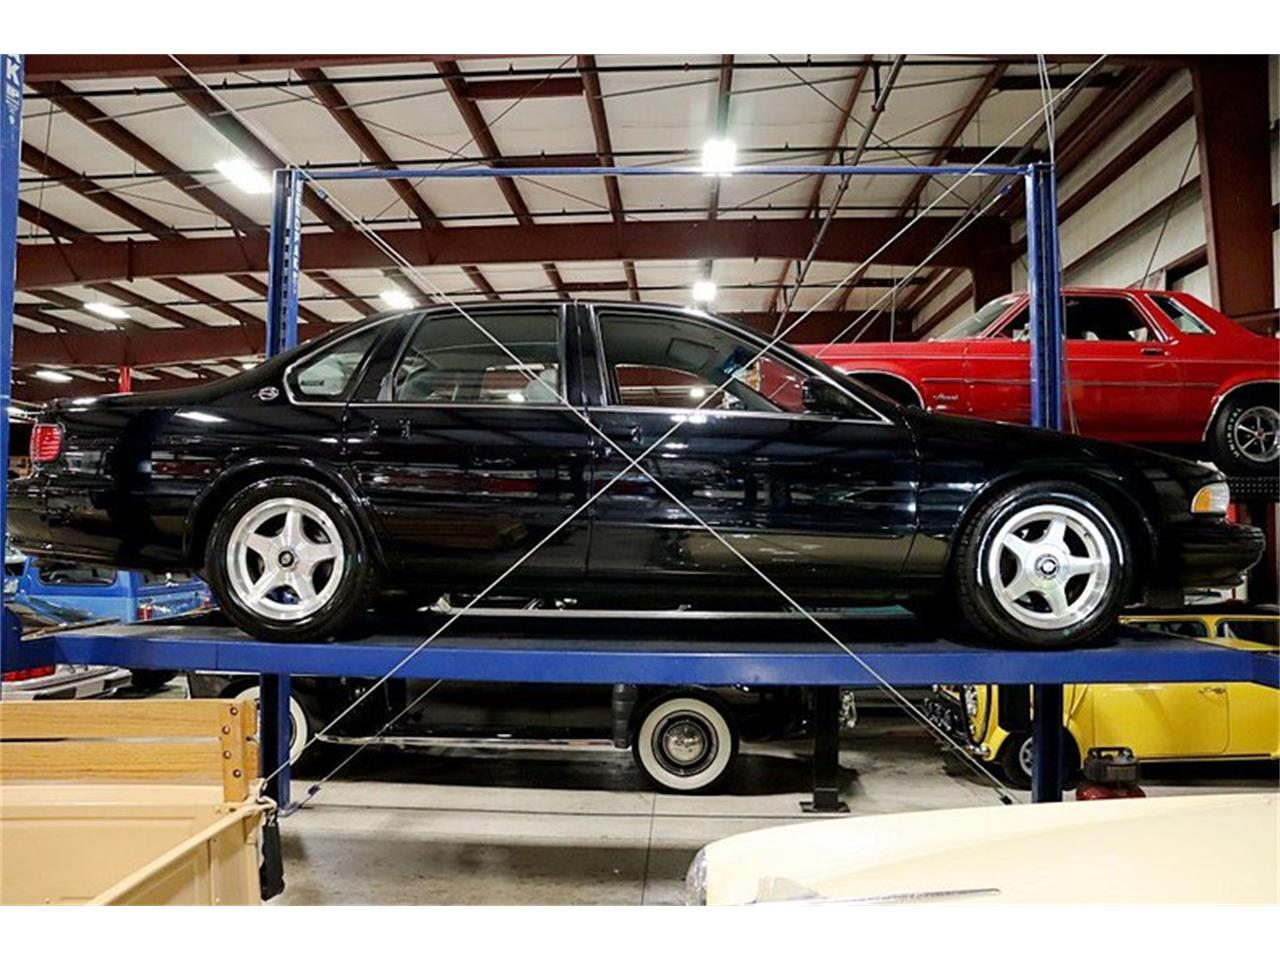 Large Picture of '96 Chevrolet Impala - $16,900.00 Offered by GR Auto Gallery - QV81